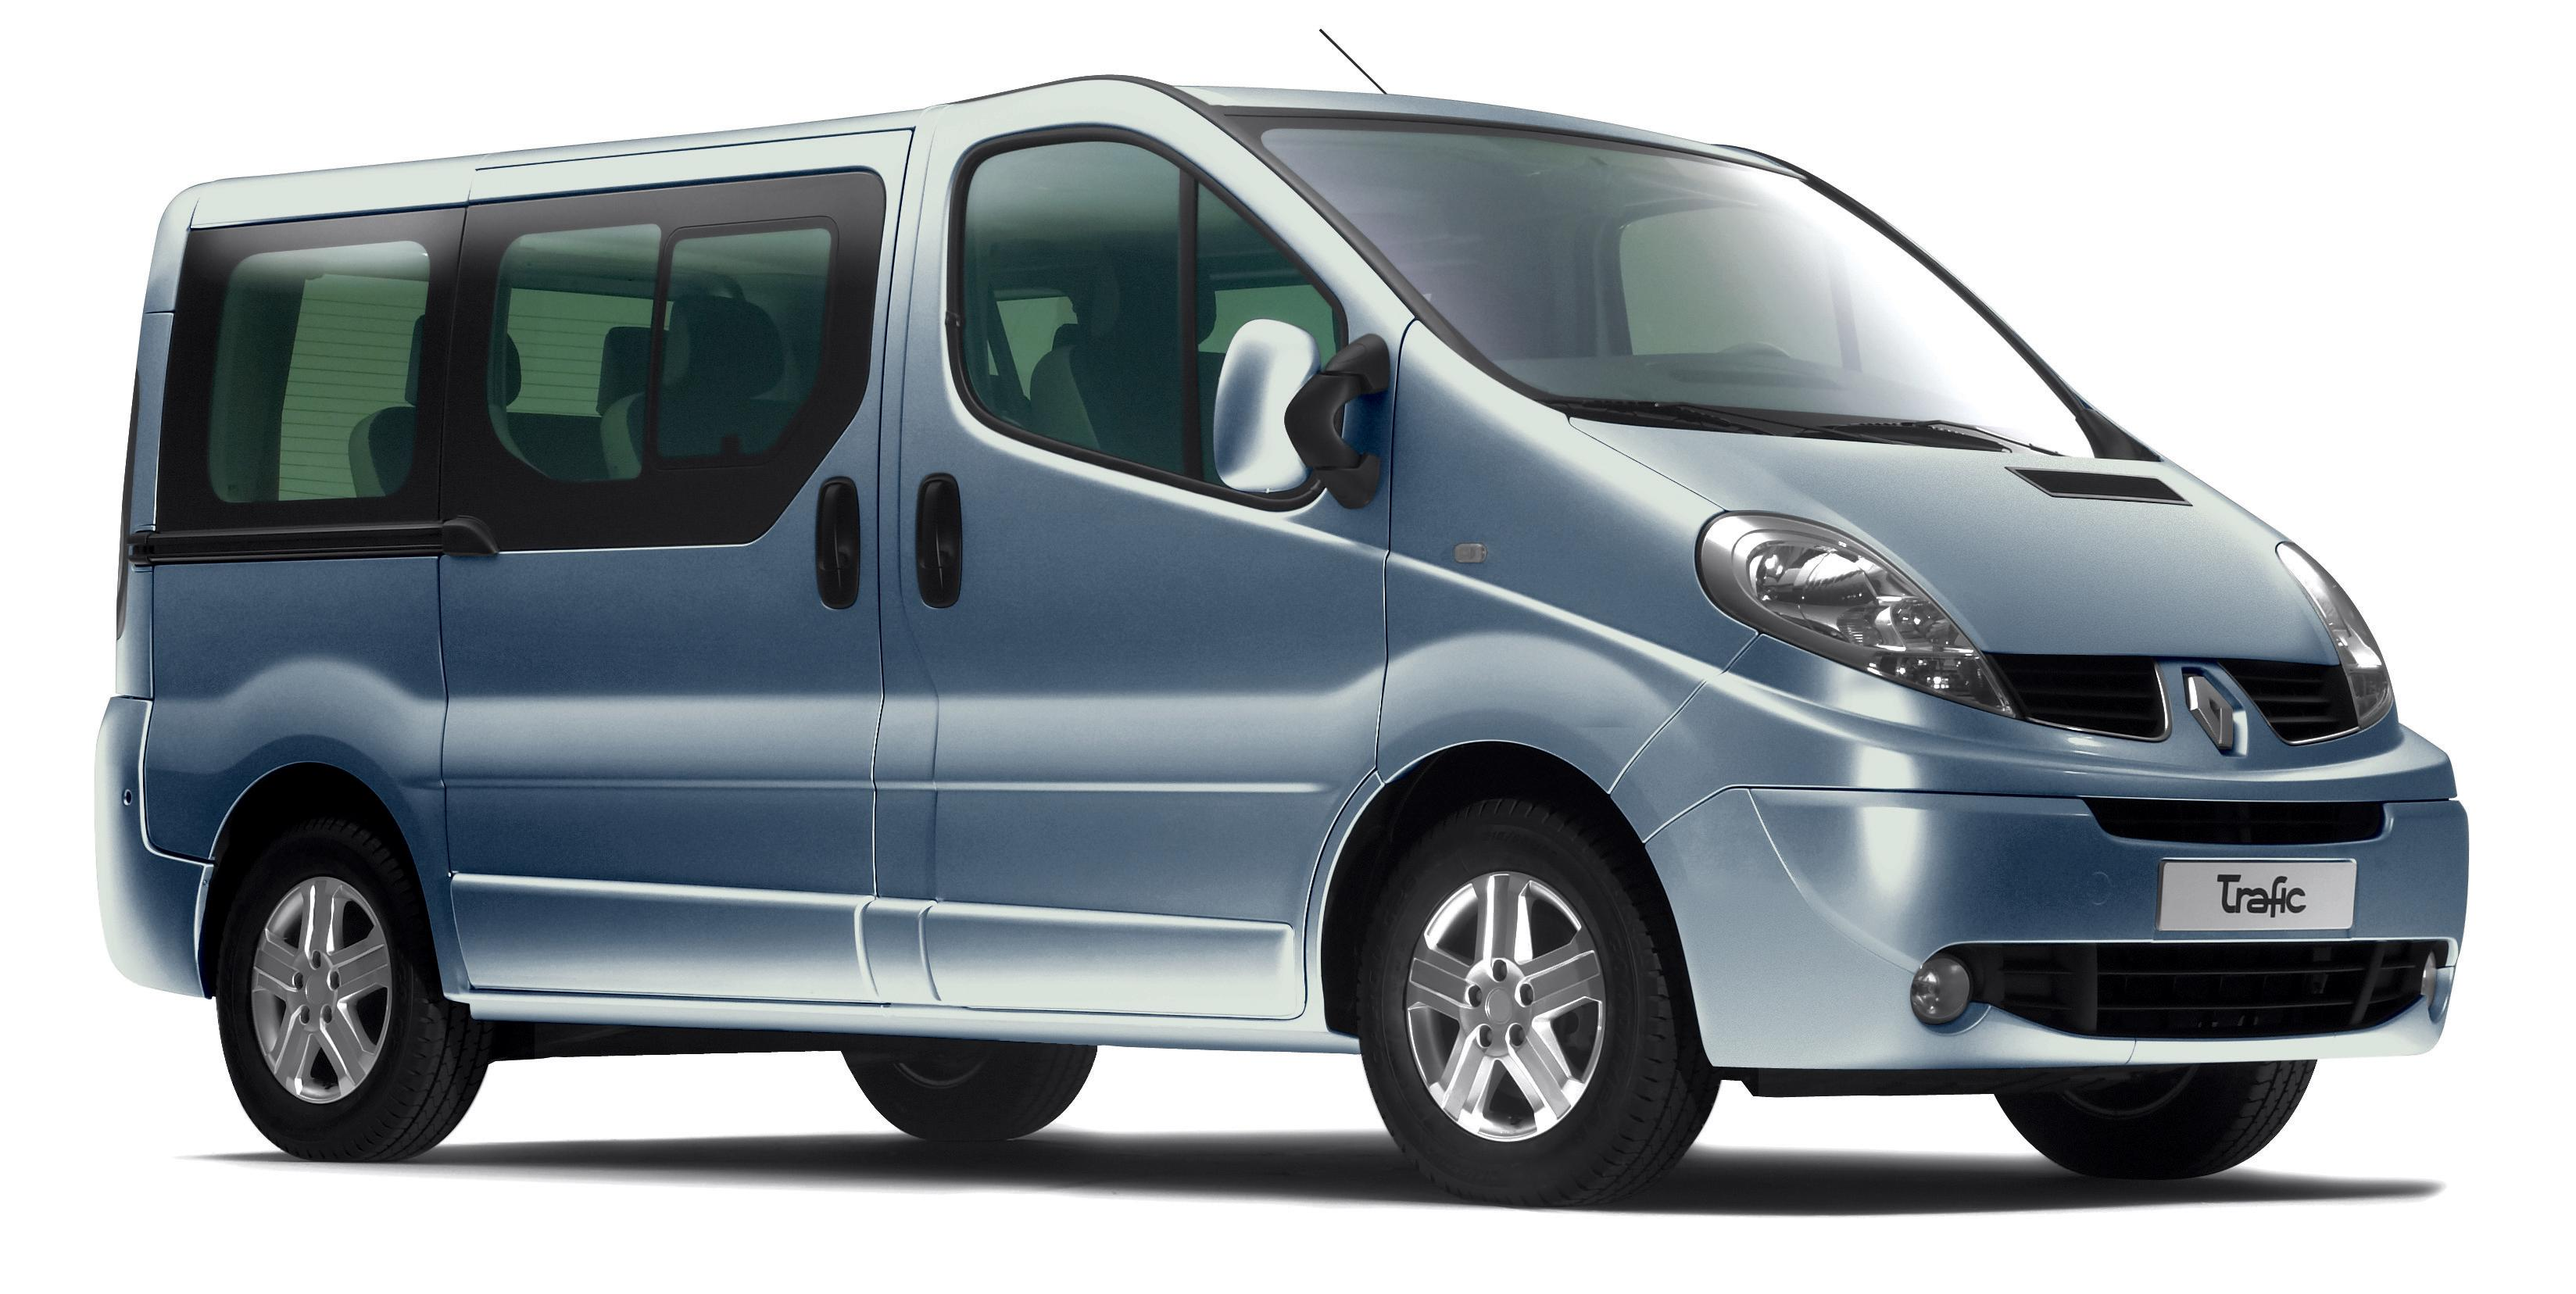 renault trafic passenger technical details history photos on better parts ltd. Black Bedroom Furniture Sets. Home Design Ideas